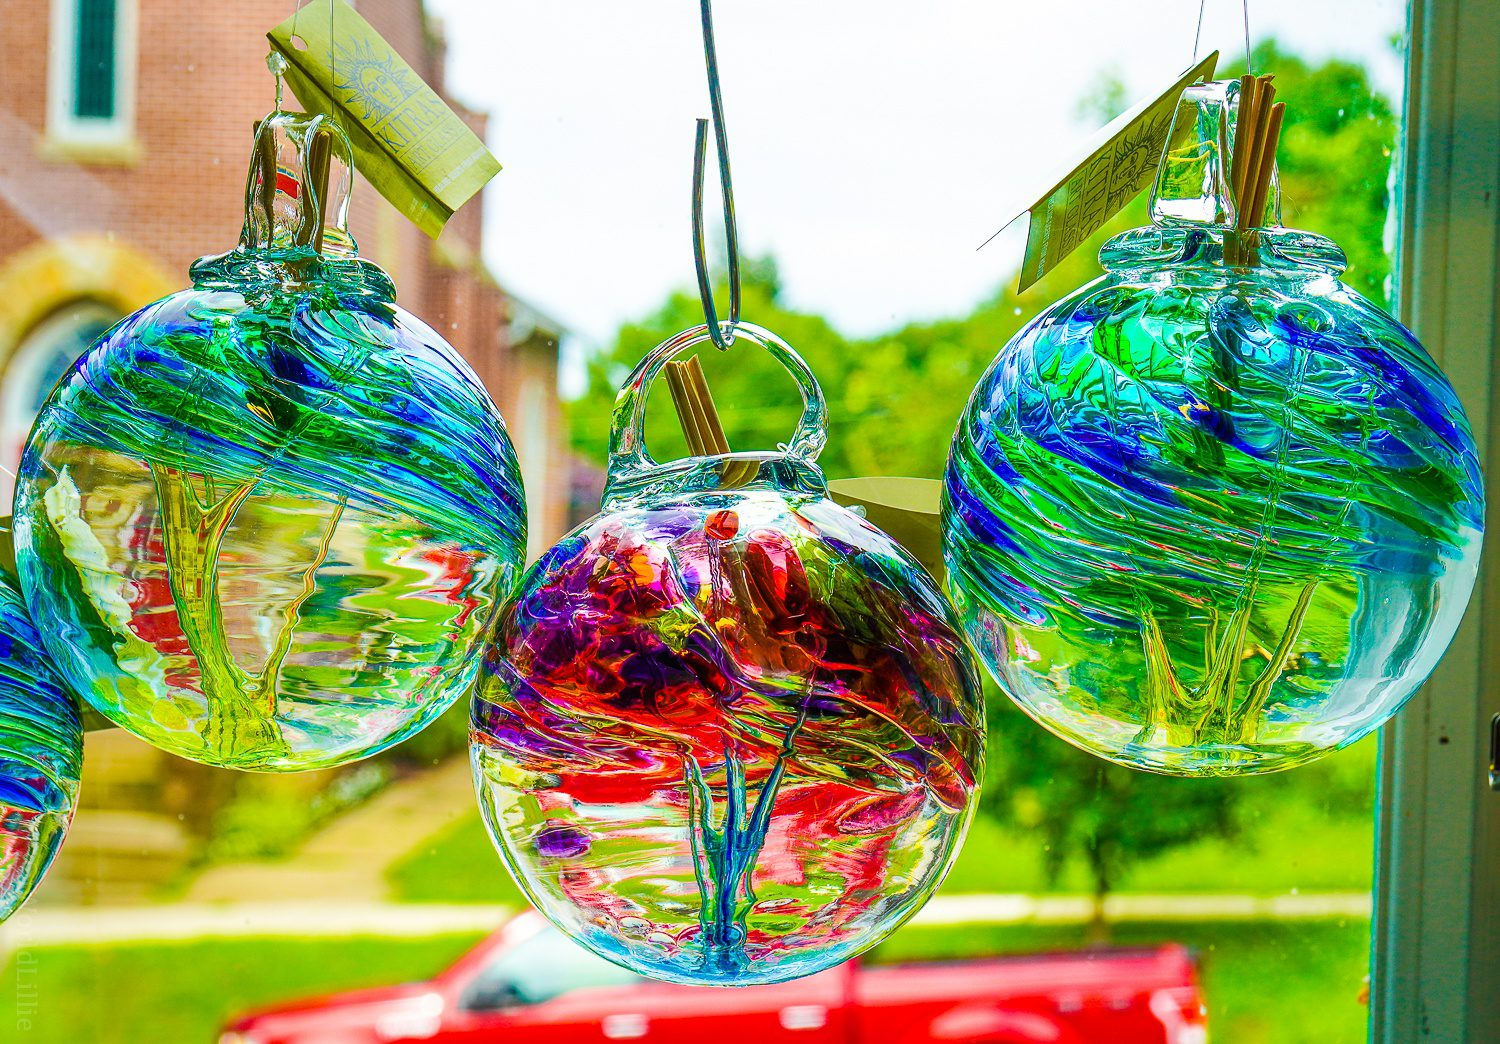 Glass ornaments by the window.